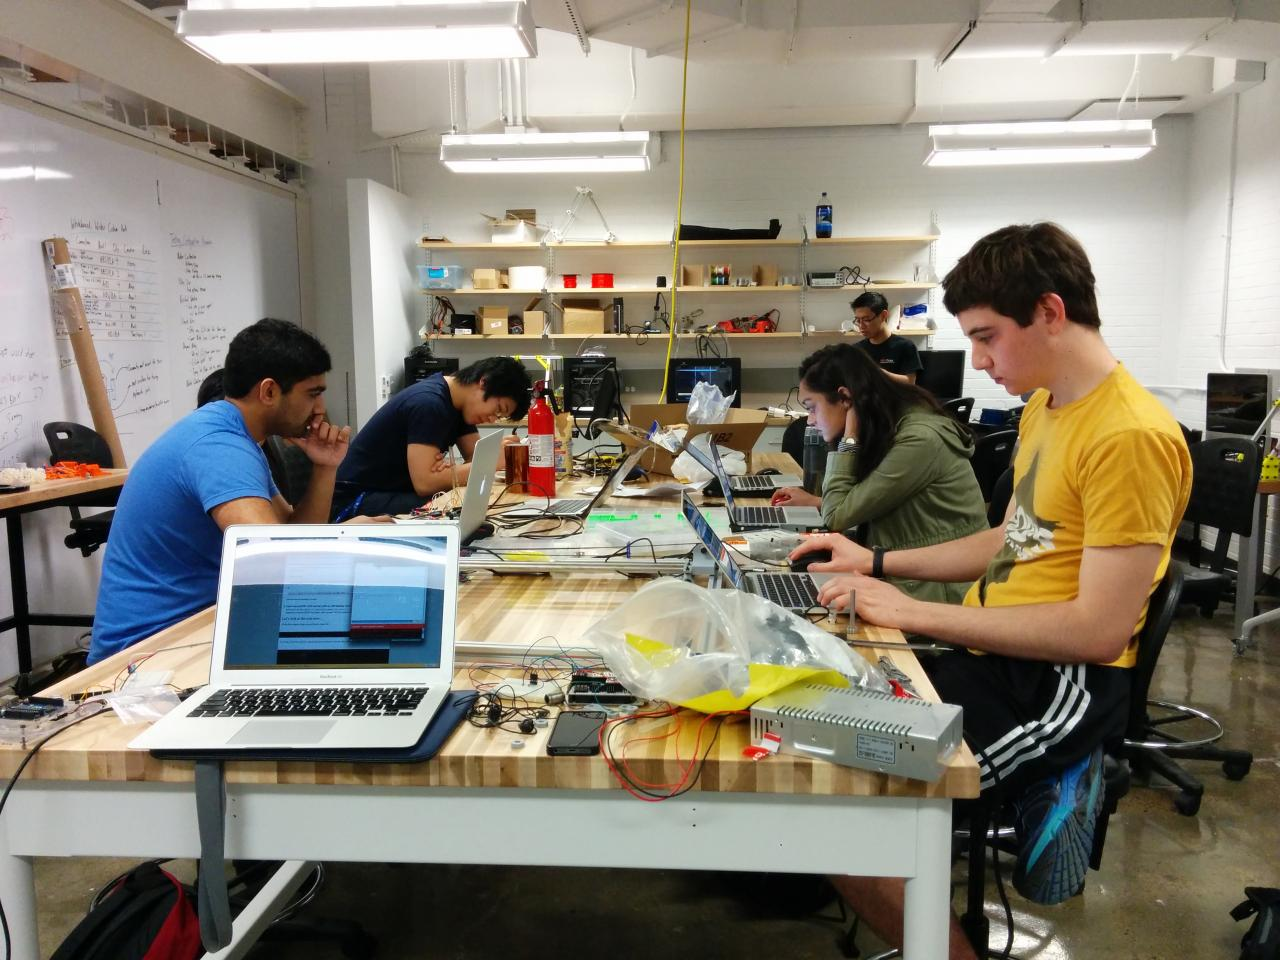 Foundry work spaces feature large adjustable tables and ample whiteboard surfaces ideal for team-based projects